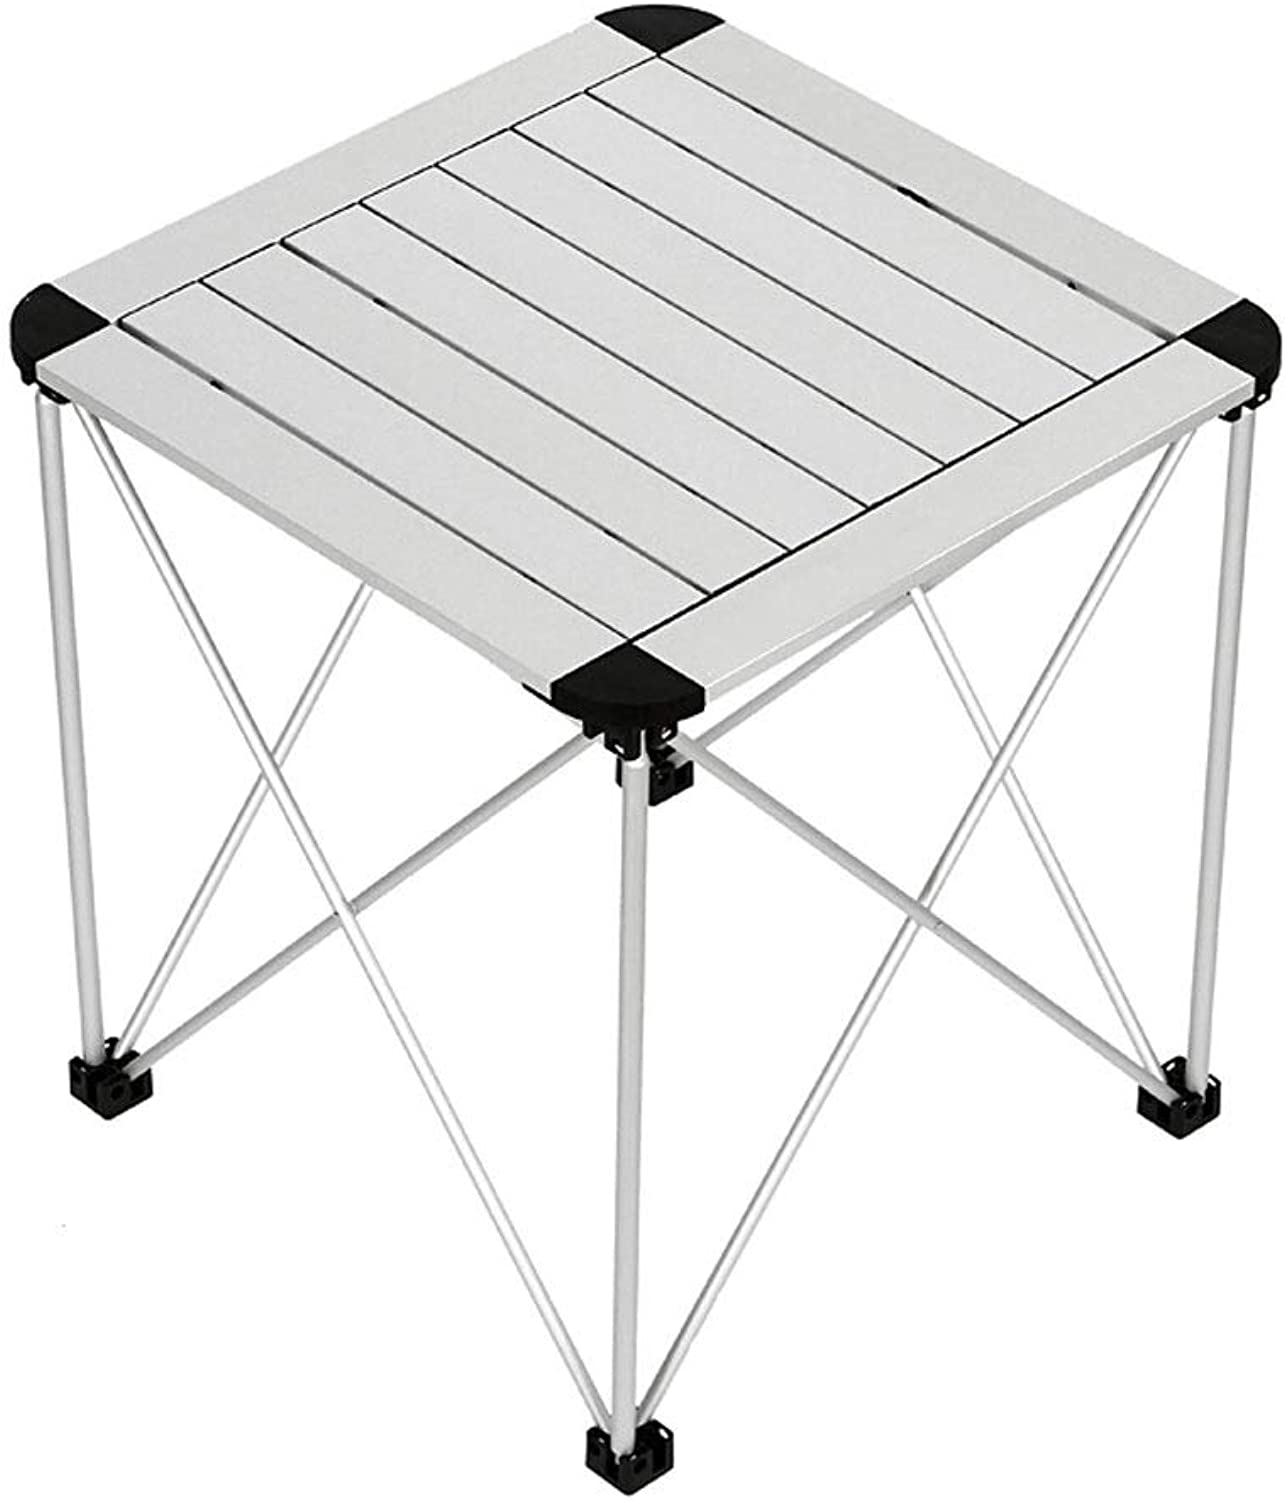 ZK Portable Folding Camping Table Aluminum Lightweight Roll Up Table Top Square Compact Collapsible Camp Side Table for Picnic Beach BBQ Outdoor Kitchen Cooking Backpacking Travel Hiking Table Indoor